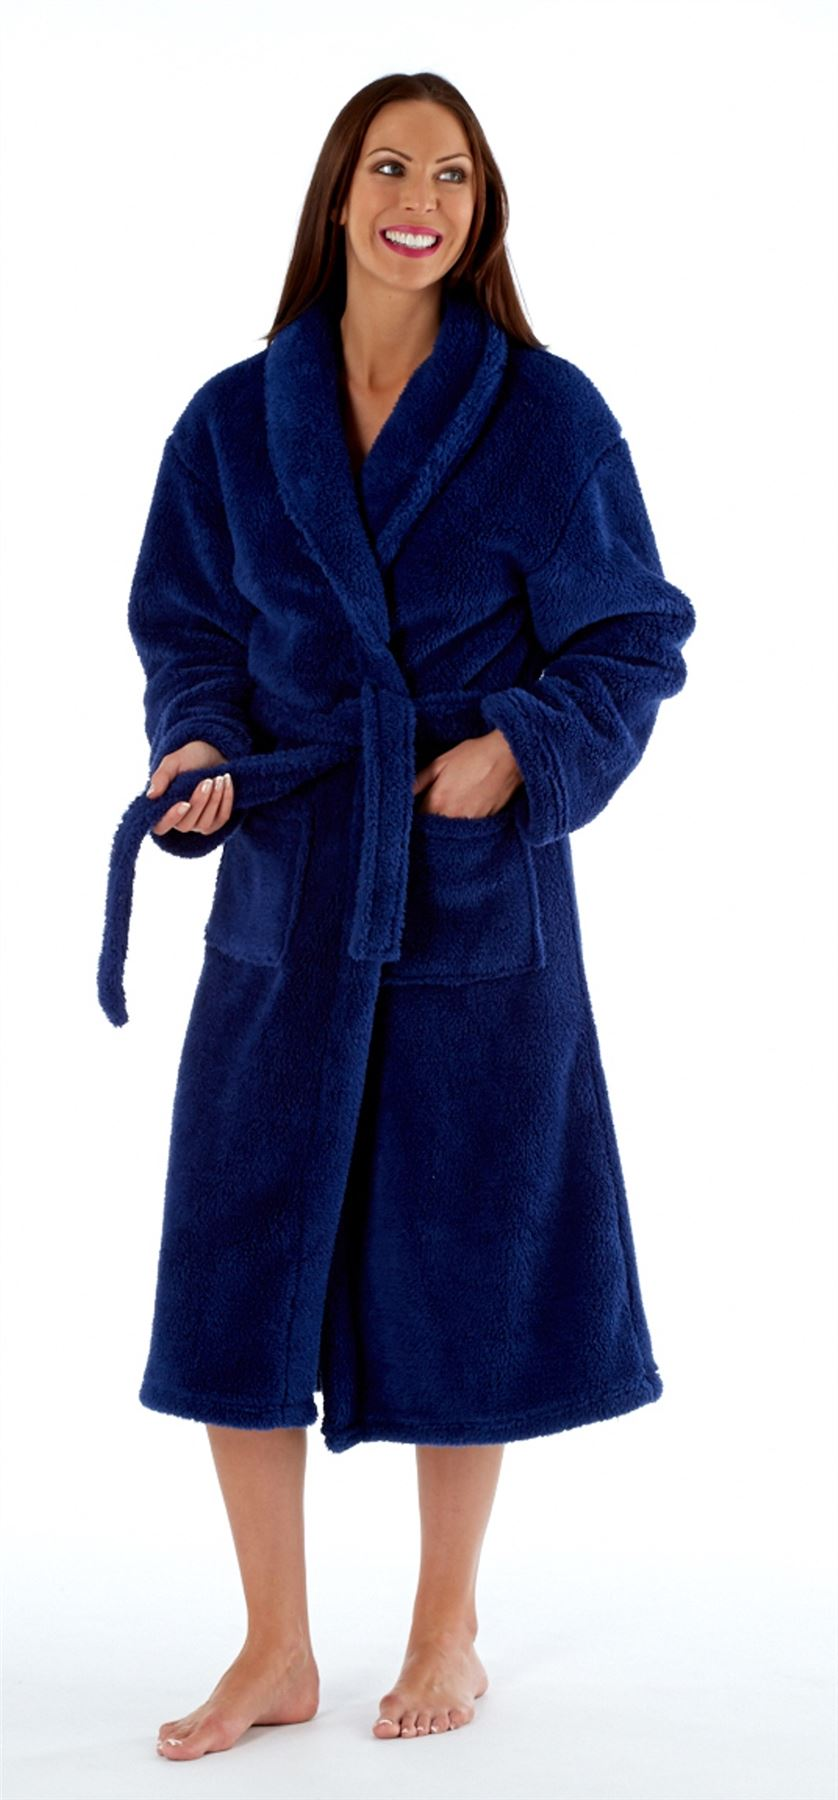 BELLOO Women Winter Fleece Dressing Gown Fluffy Bathrobe Full Long. £ - £ Prime. out of 5 stars BELLOO Ladies Soft Fleece Dressing Gown Full Length Fluffy Bathrobe Zip Up. £ - £ out of 5 stars Womens Inspirations Hooded Luxury Polka Dot Lounger Poncho.